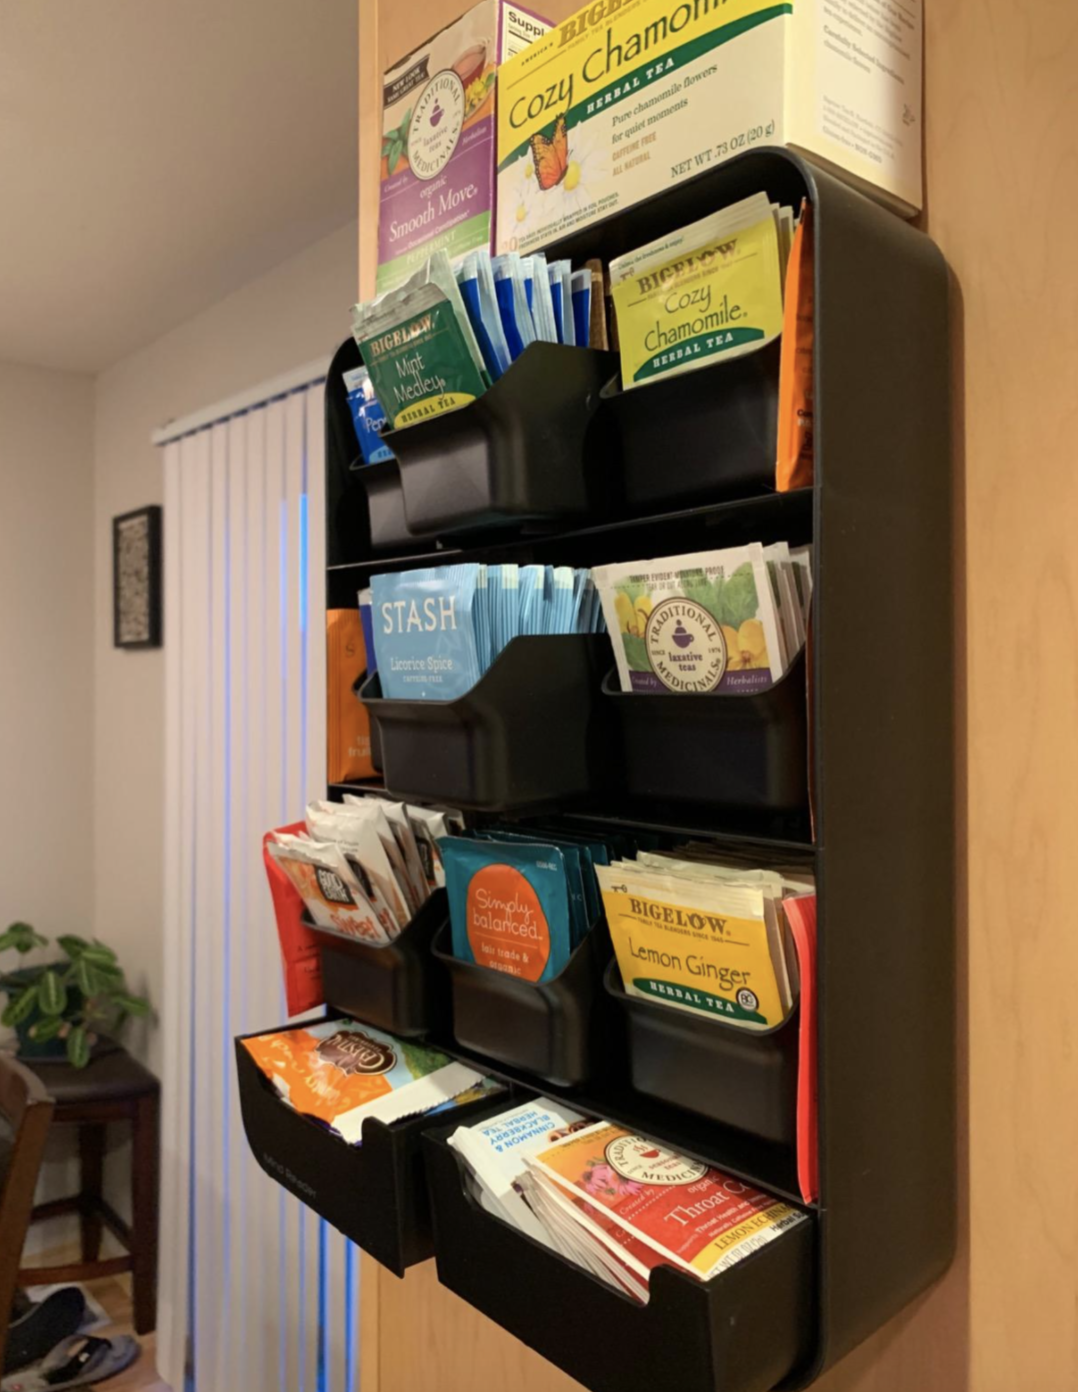 Review image of organizer attached to the wall with nine drawers for holding tea bags